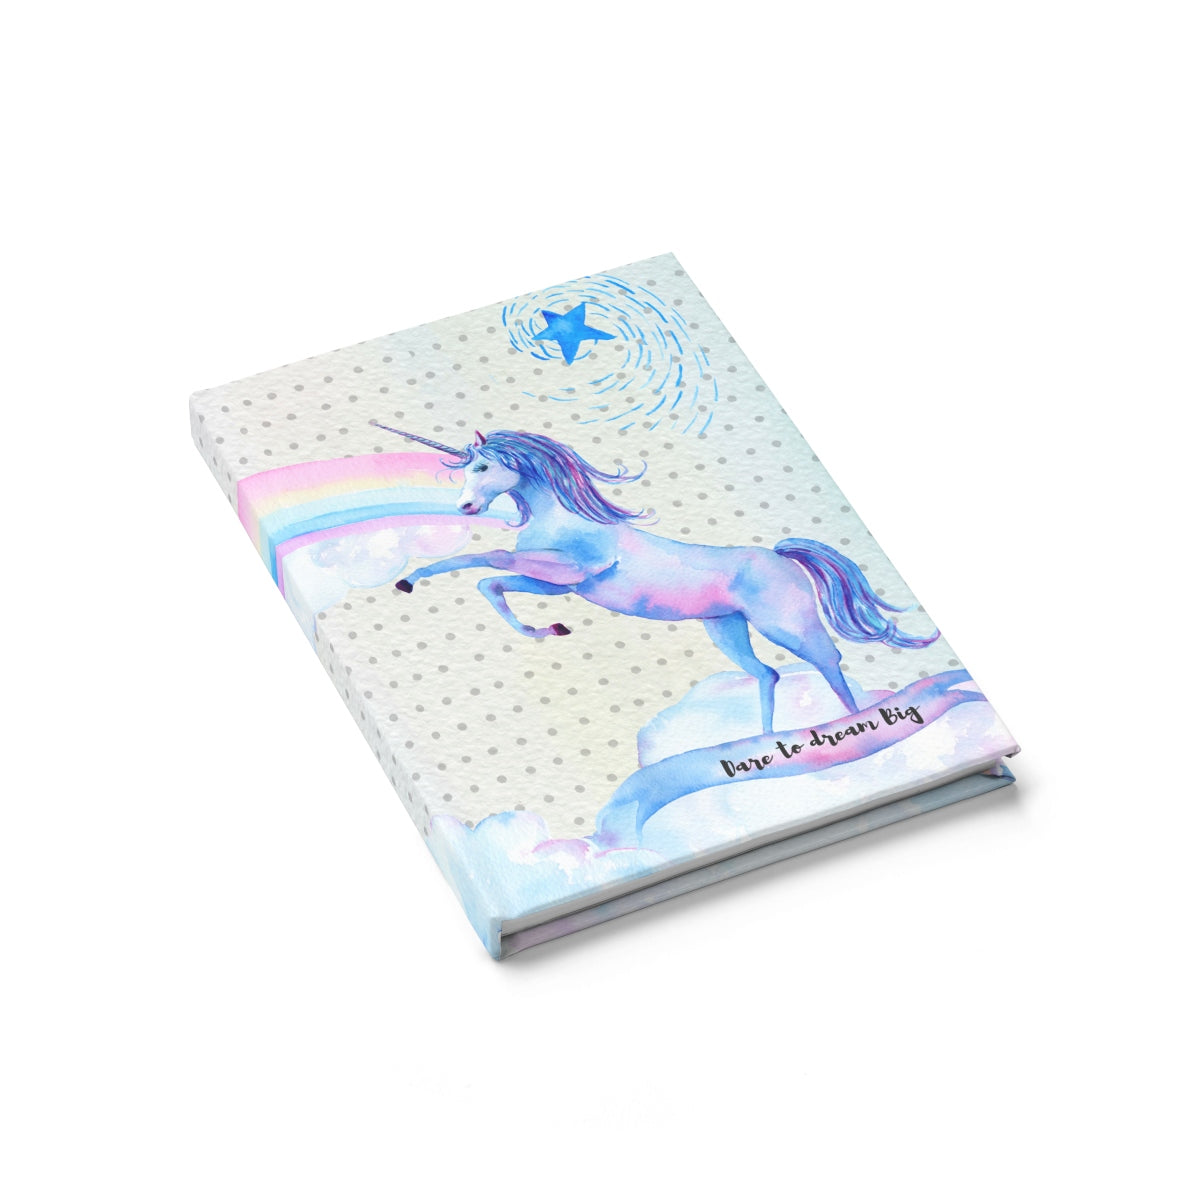 Dare to Dream Big Journal with Watercolor Unicorn and Rainbows- Ruled Line Paper products - Polka Dotted All The Things Boutique